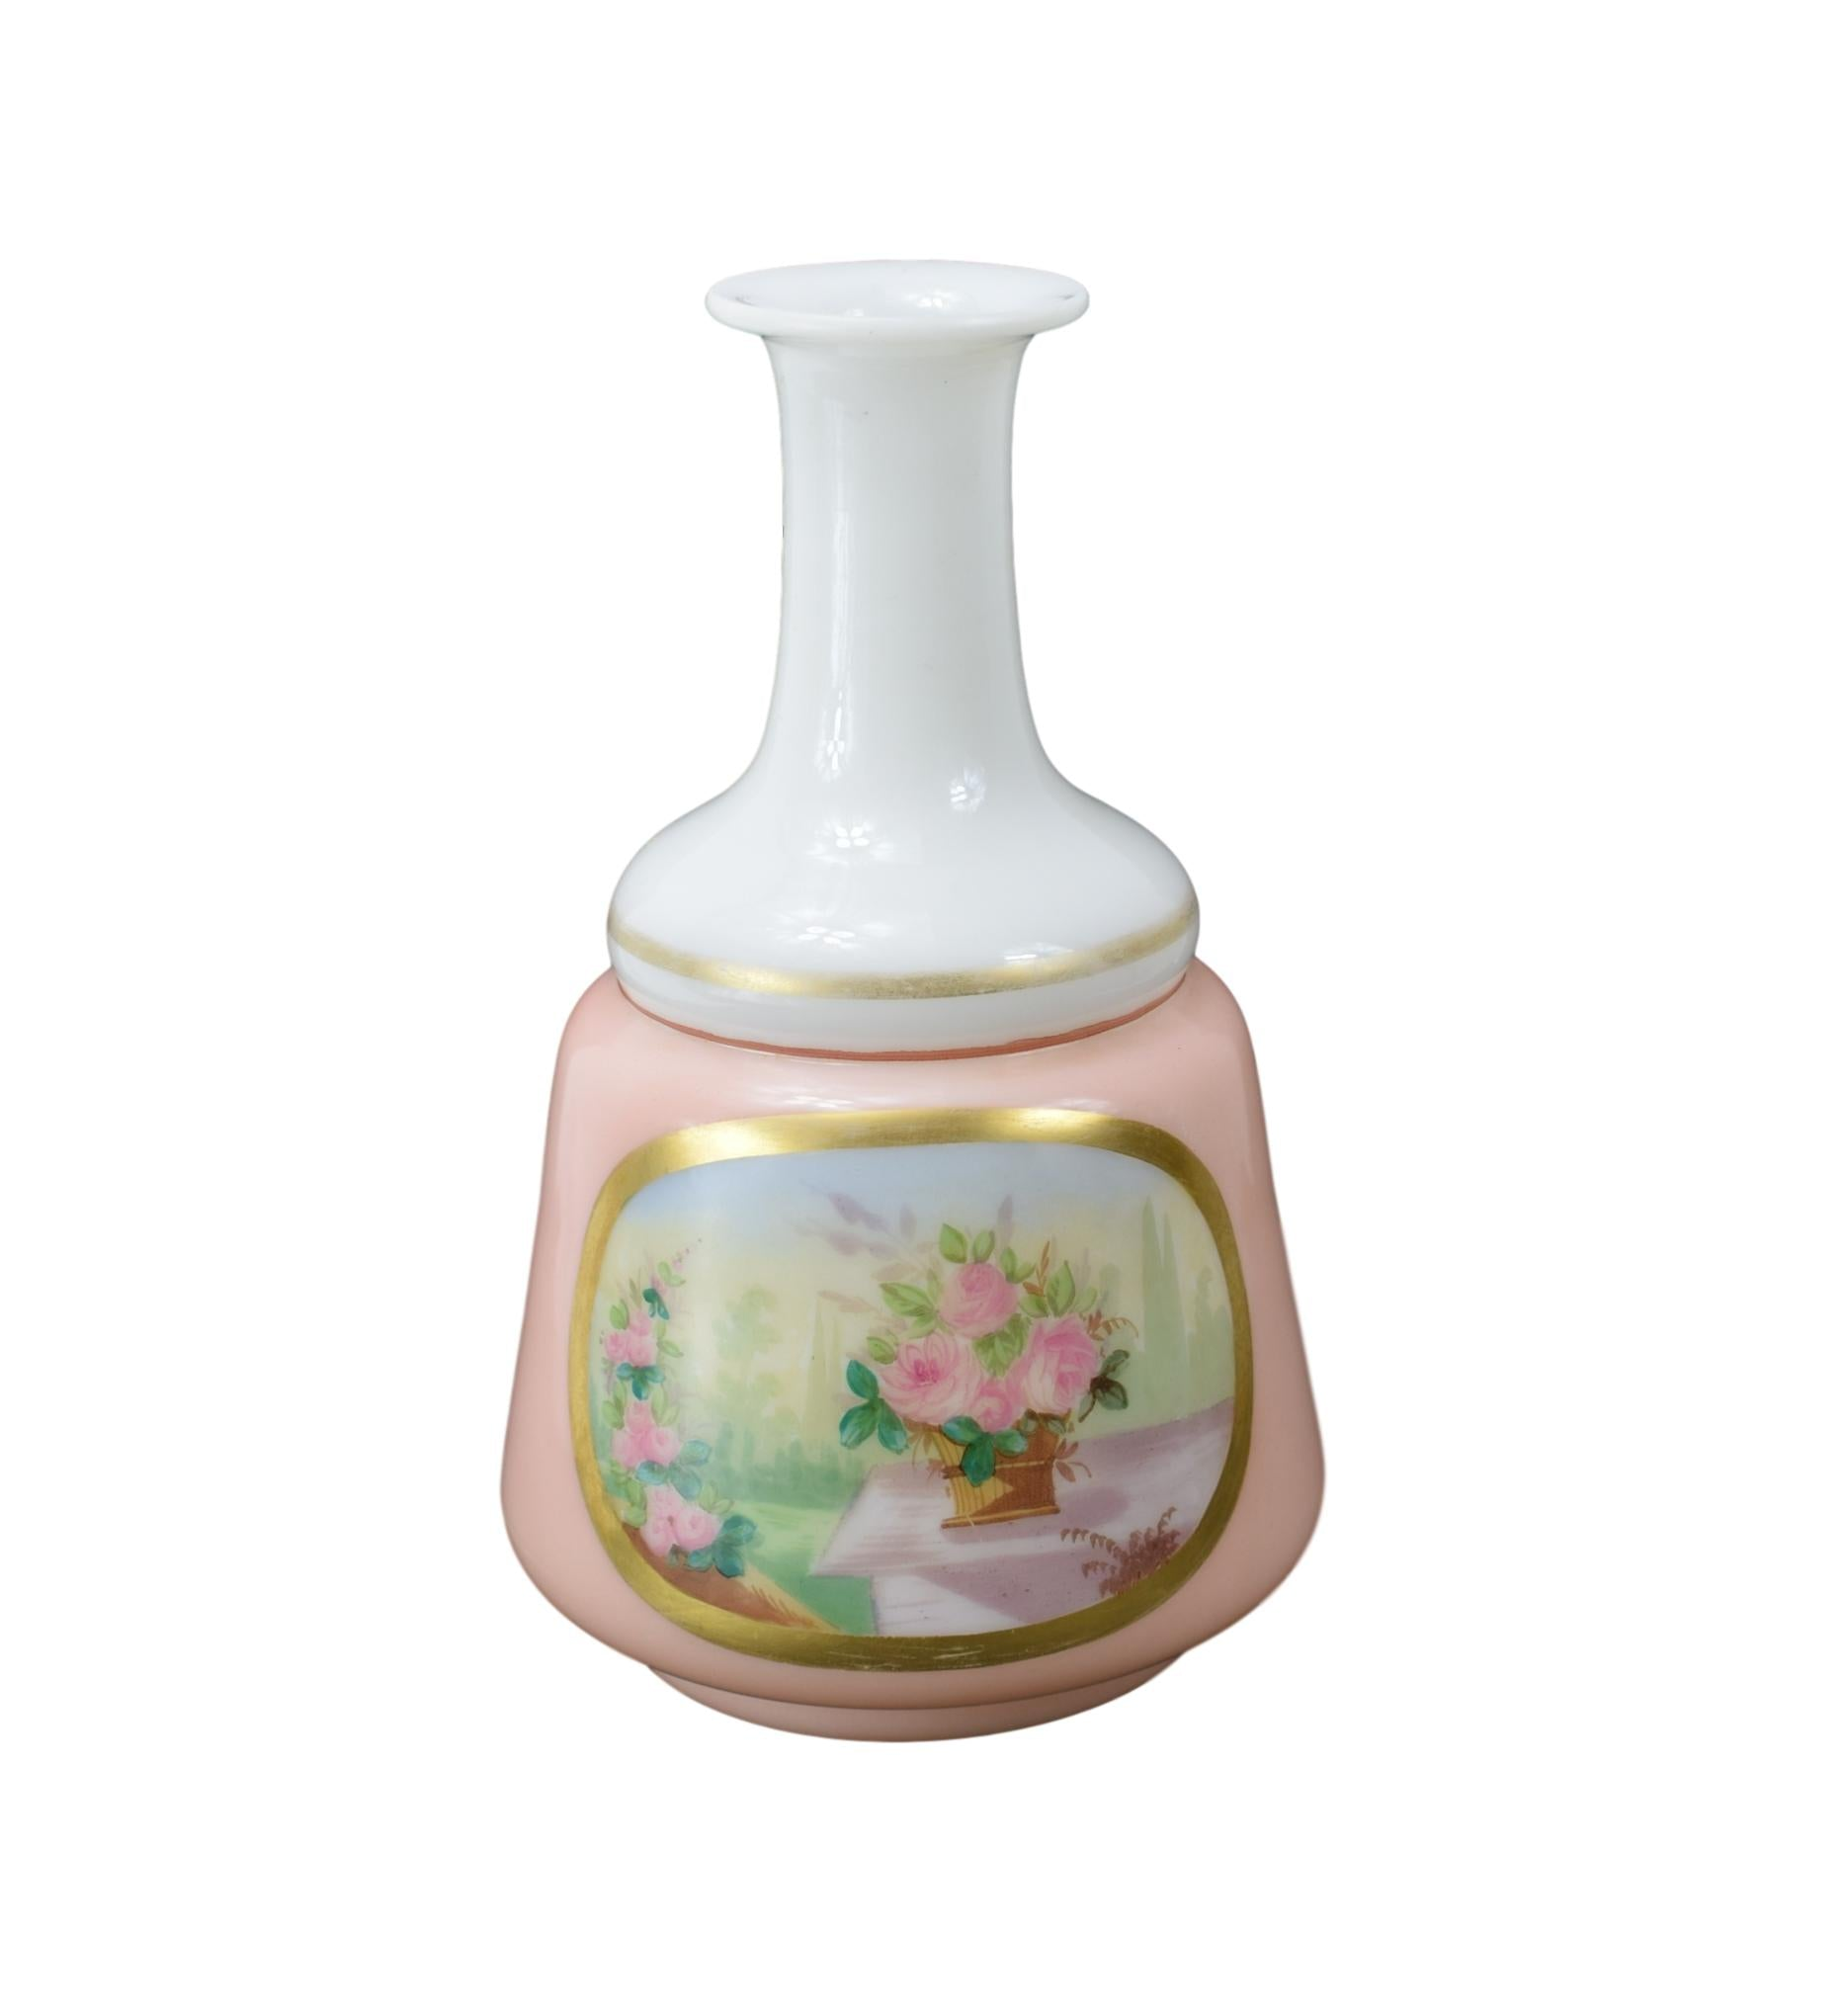 Antique 19th.C Pink and White Opaline Decanter, Hand Painted Bunch of Roses, Shabby Chic Vase, Bonne Nuit, Night Water Decanter